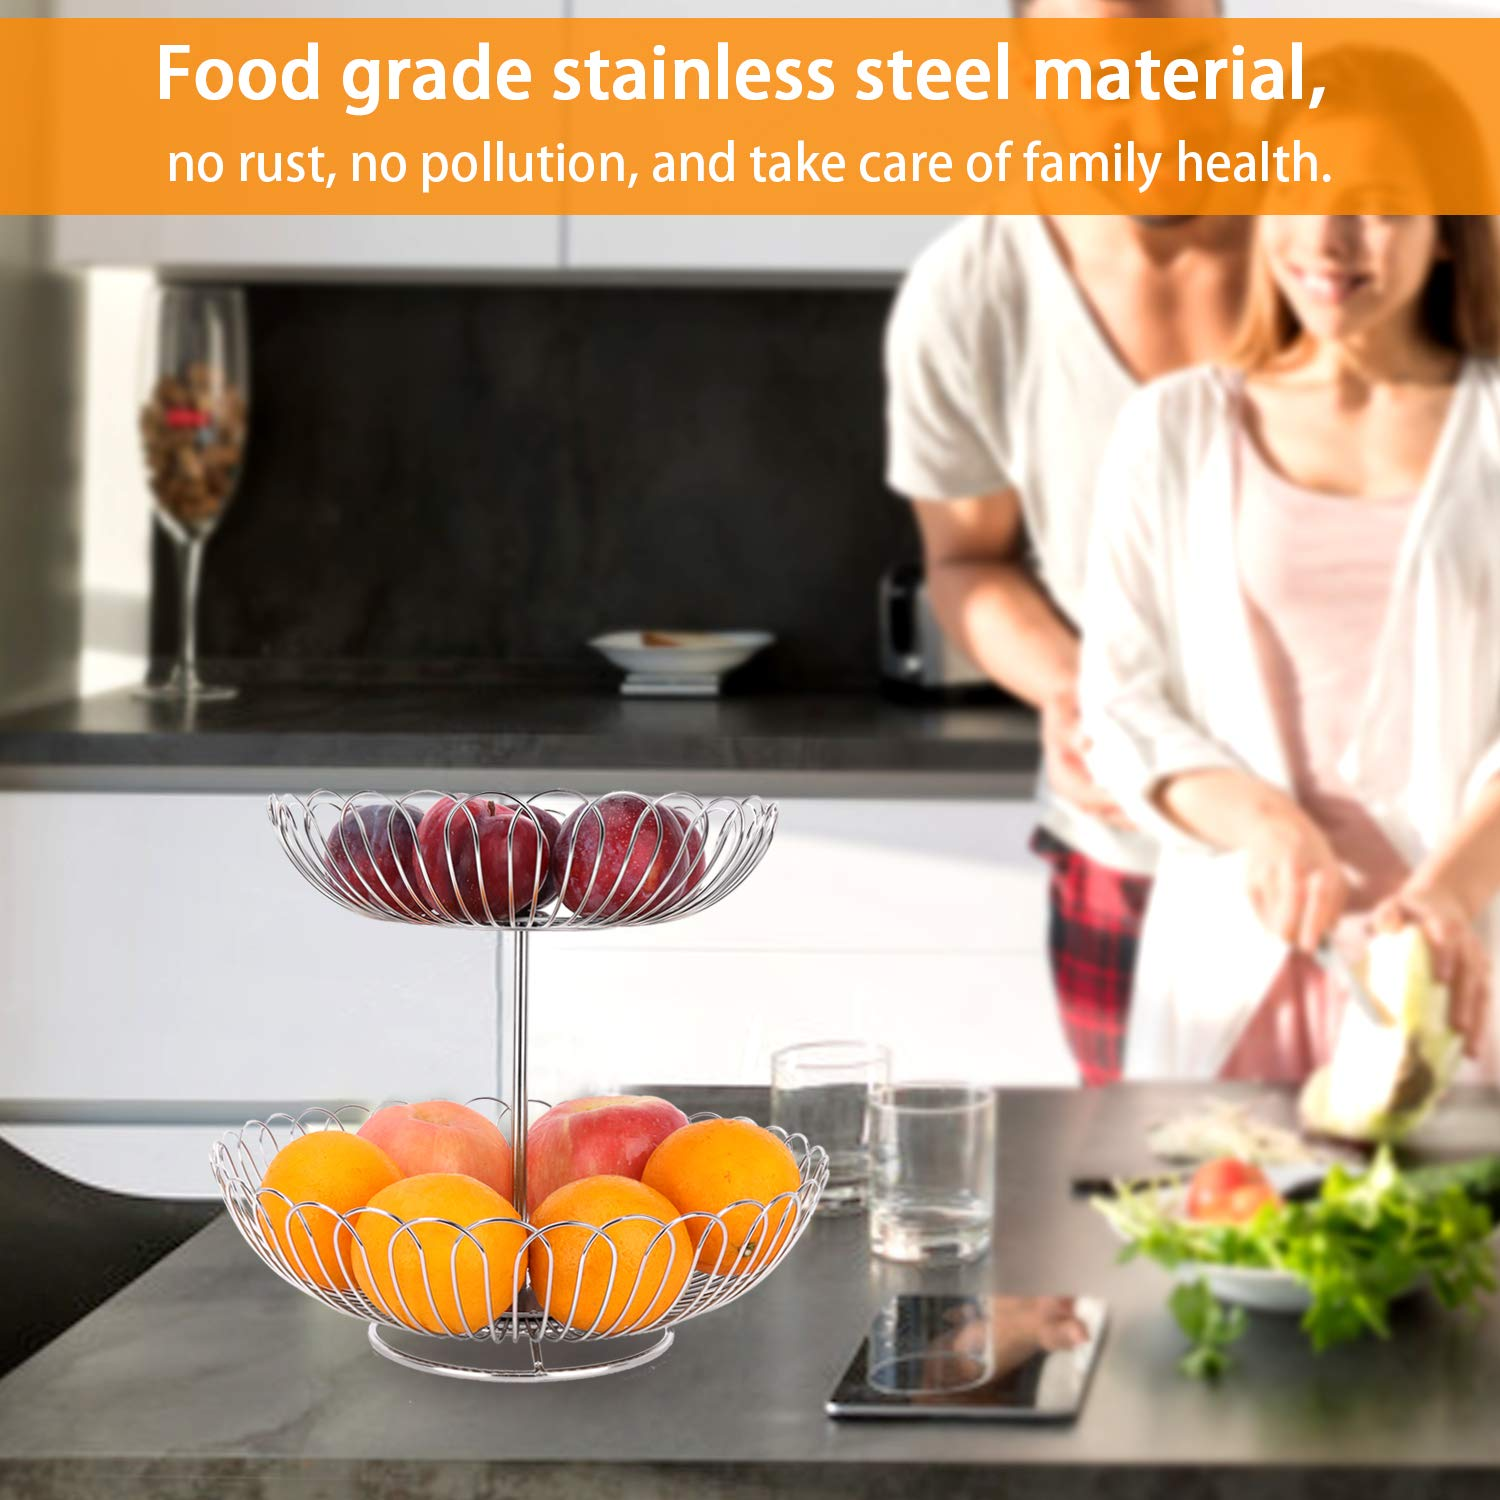 Stainless Steel 2 Tier Wire Fruit Basket Bowl for Kitchen Counter Stand with Bread by LANEJOY (Image #6)